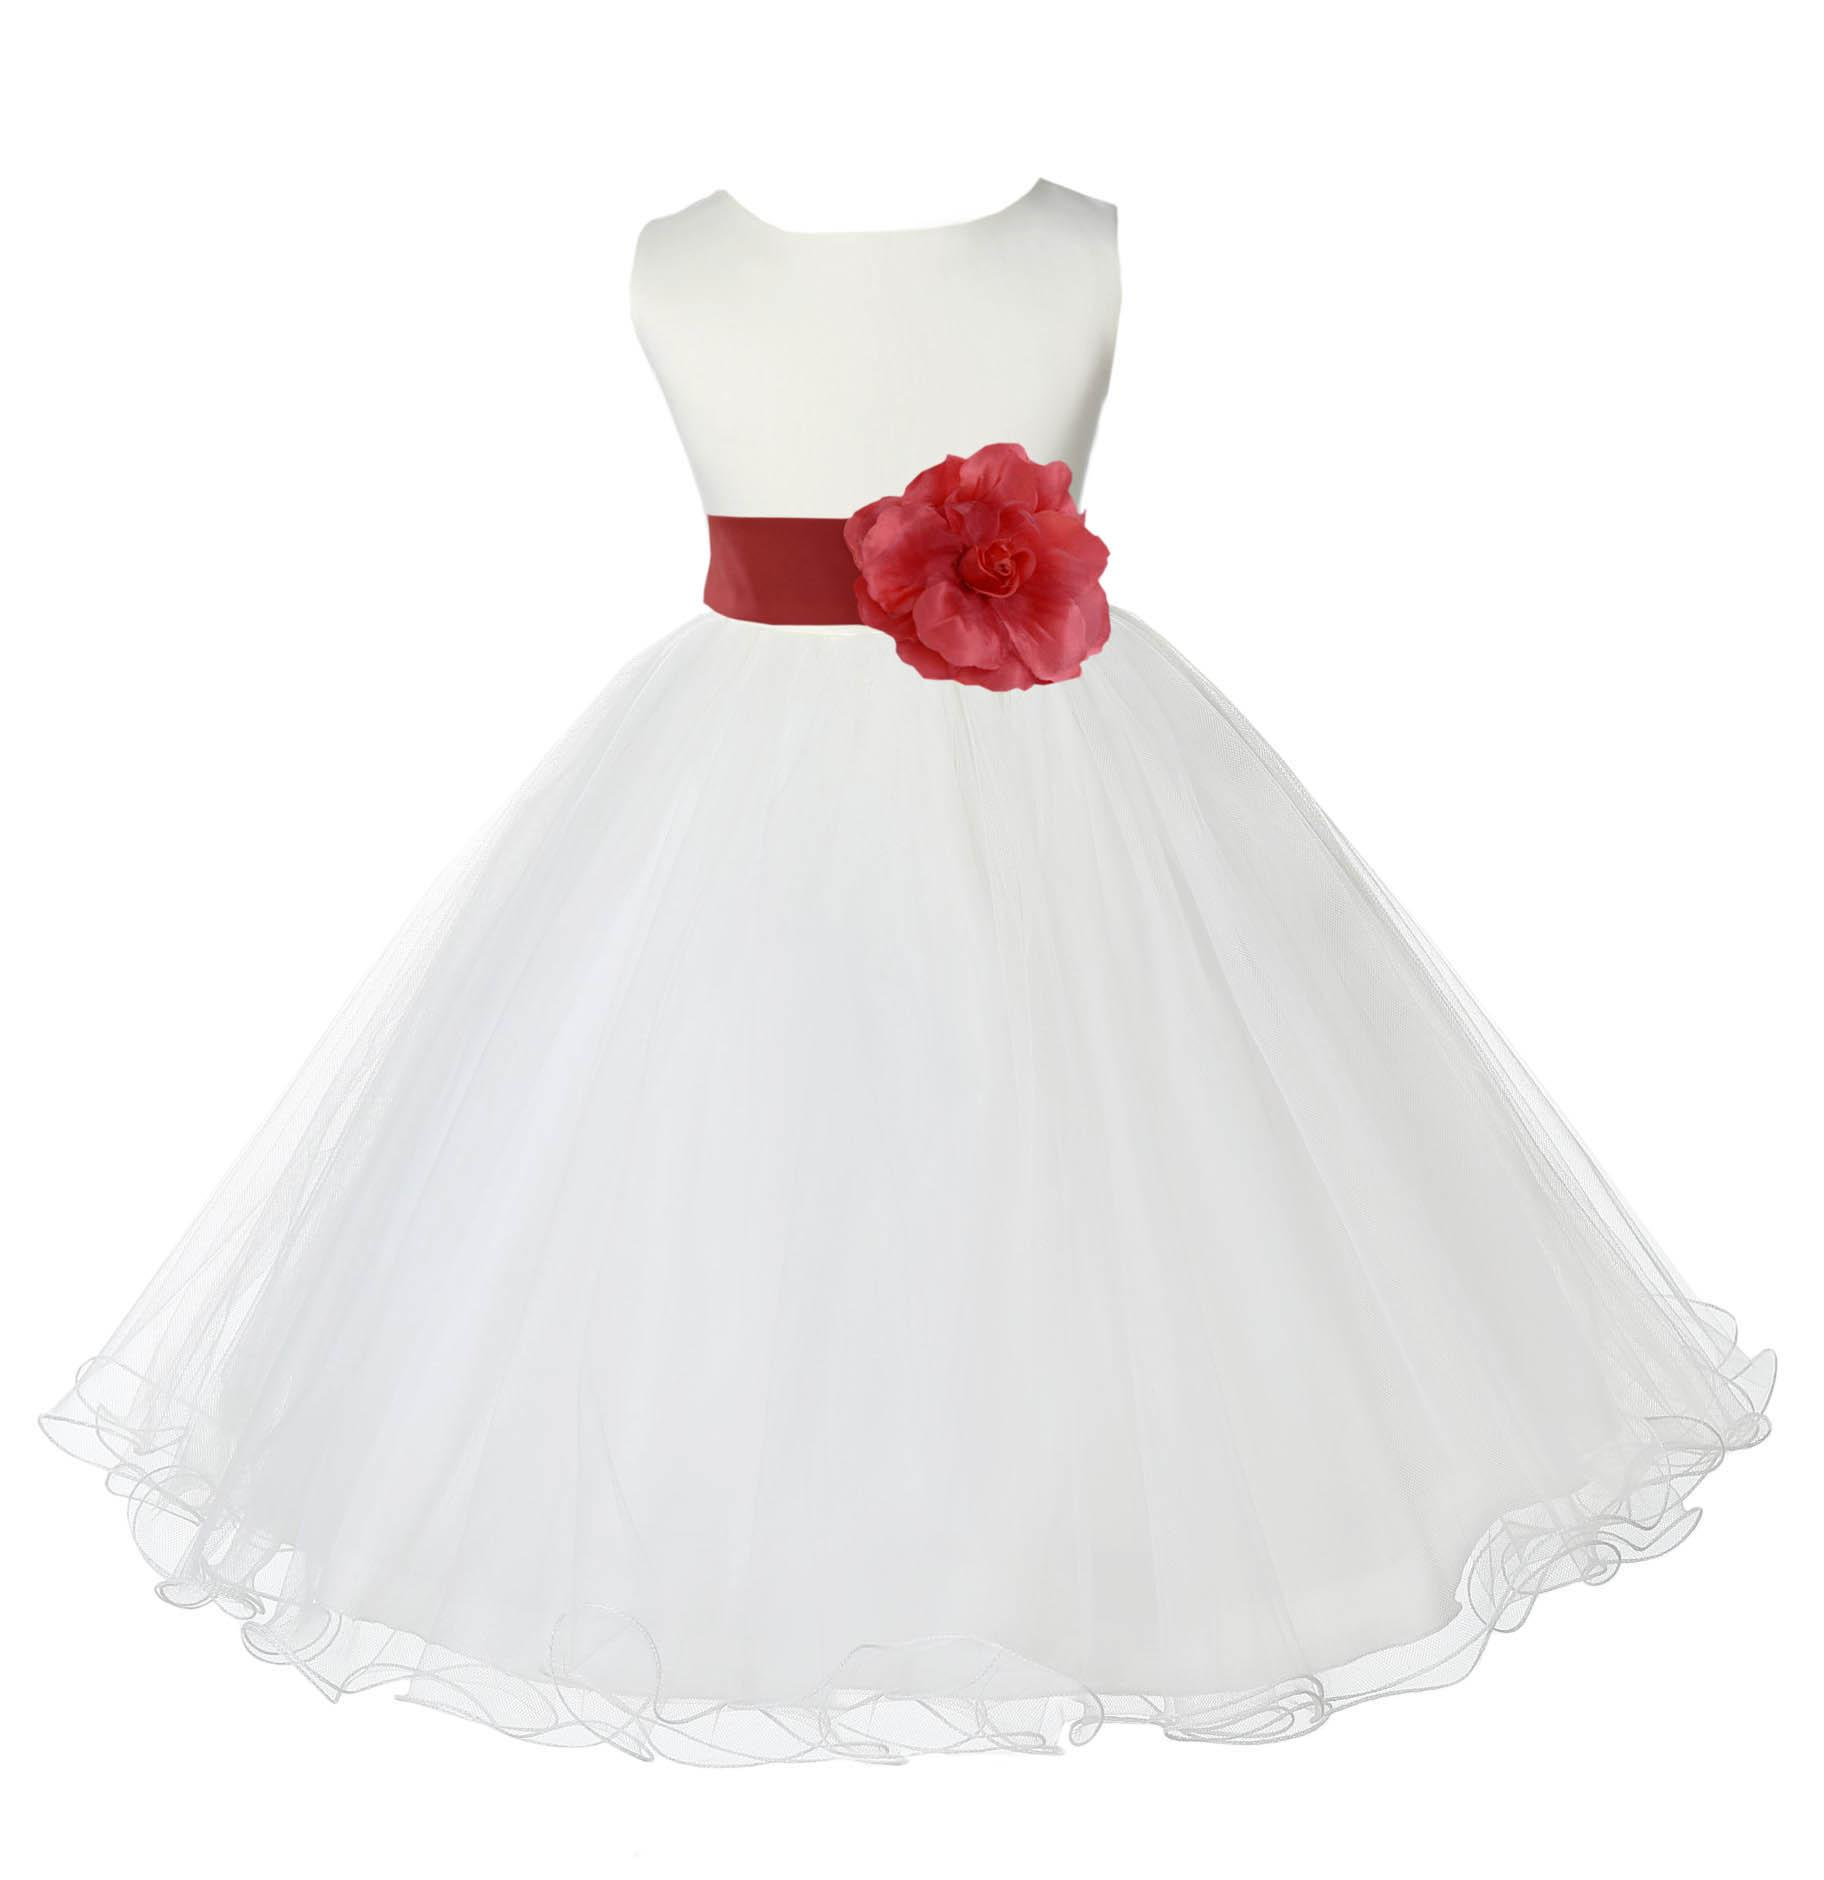 Clothing baptism 829t size 12 18 month flower girl dress walmart com